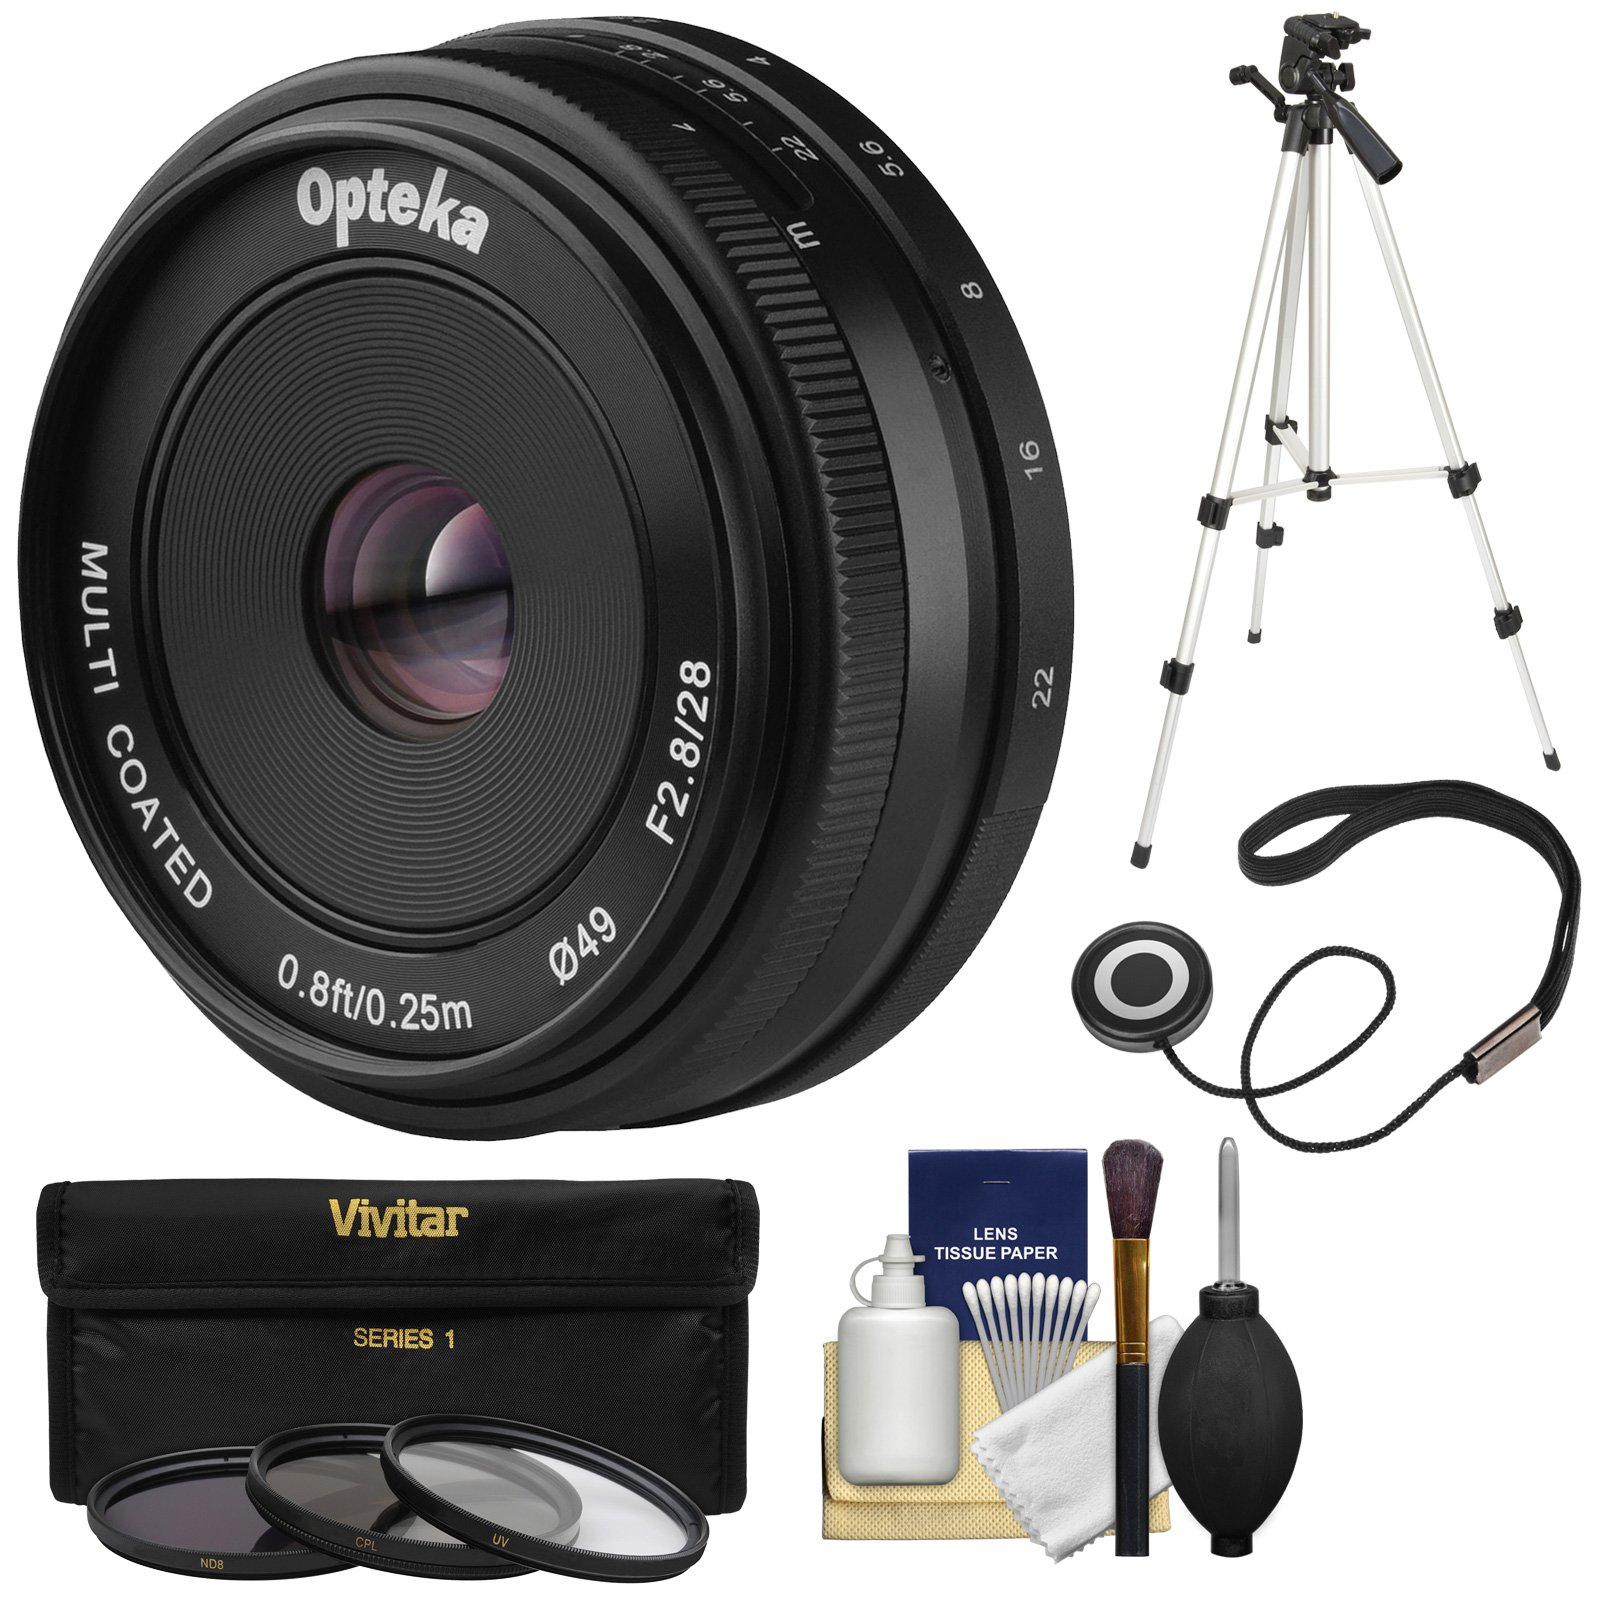 Opteka 28mm f/2.8 HD MF Prime Pancake Lens with 3 UV/CPL/ND8 Filters + Tripod Kit for Sony Alpha E-Mount Digital Cameras